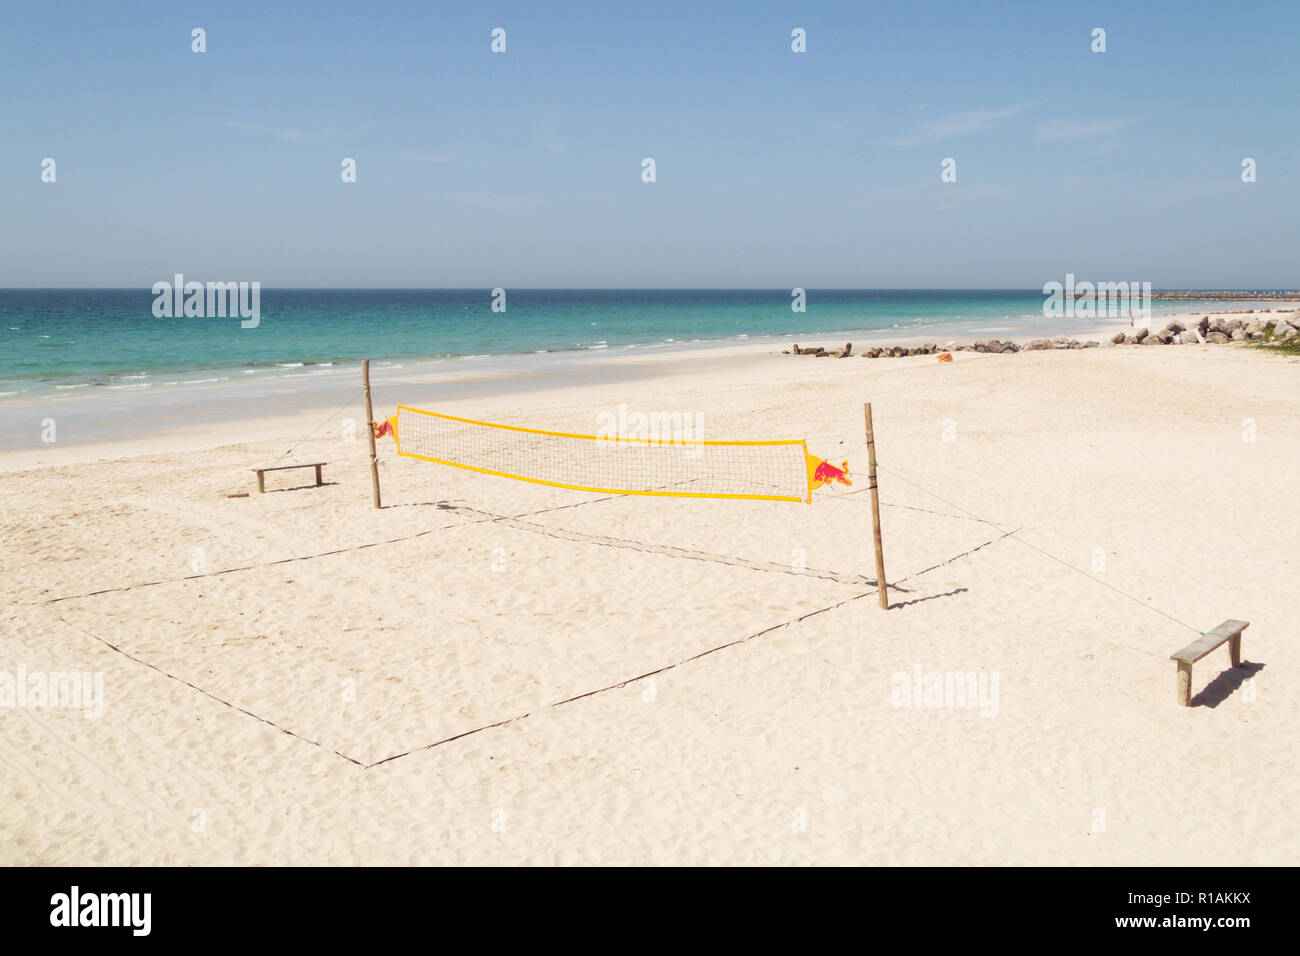 Empty Beach Volleyball Court Ready To Play Game Beach Volleyball Court In A Beautiful Summer Day With Ocean And Blue Cloudy Sky Volleyball Net On The Tropical Beach Stock Photo Alamy